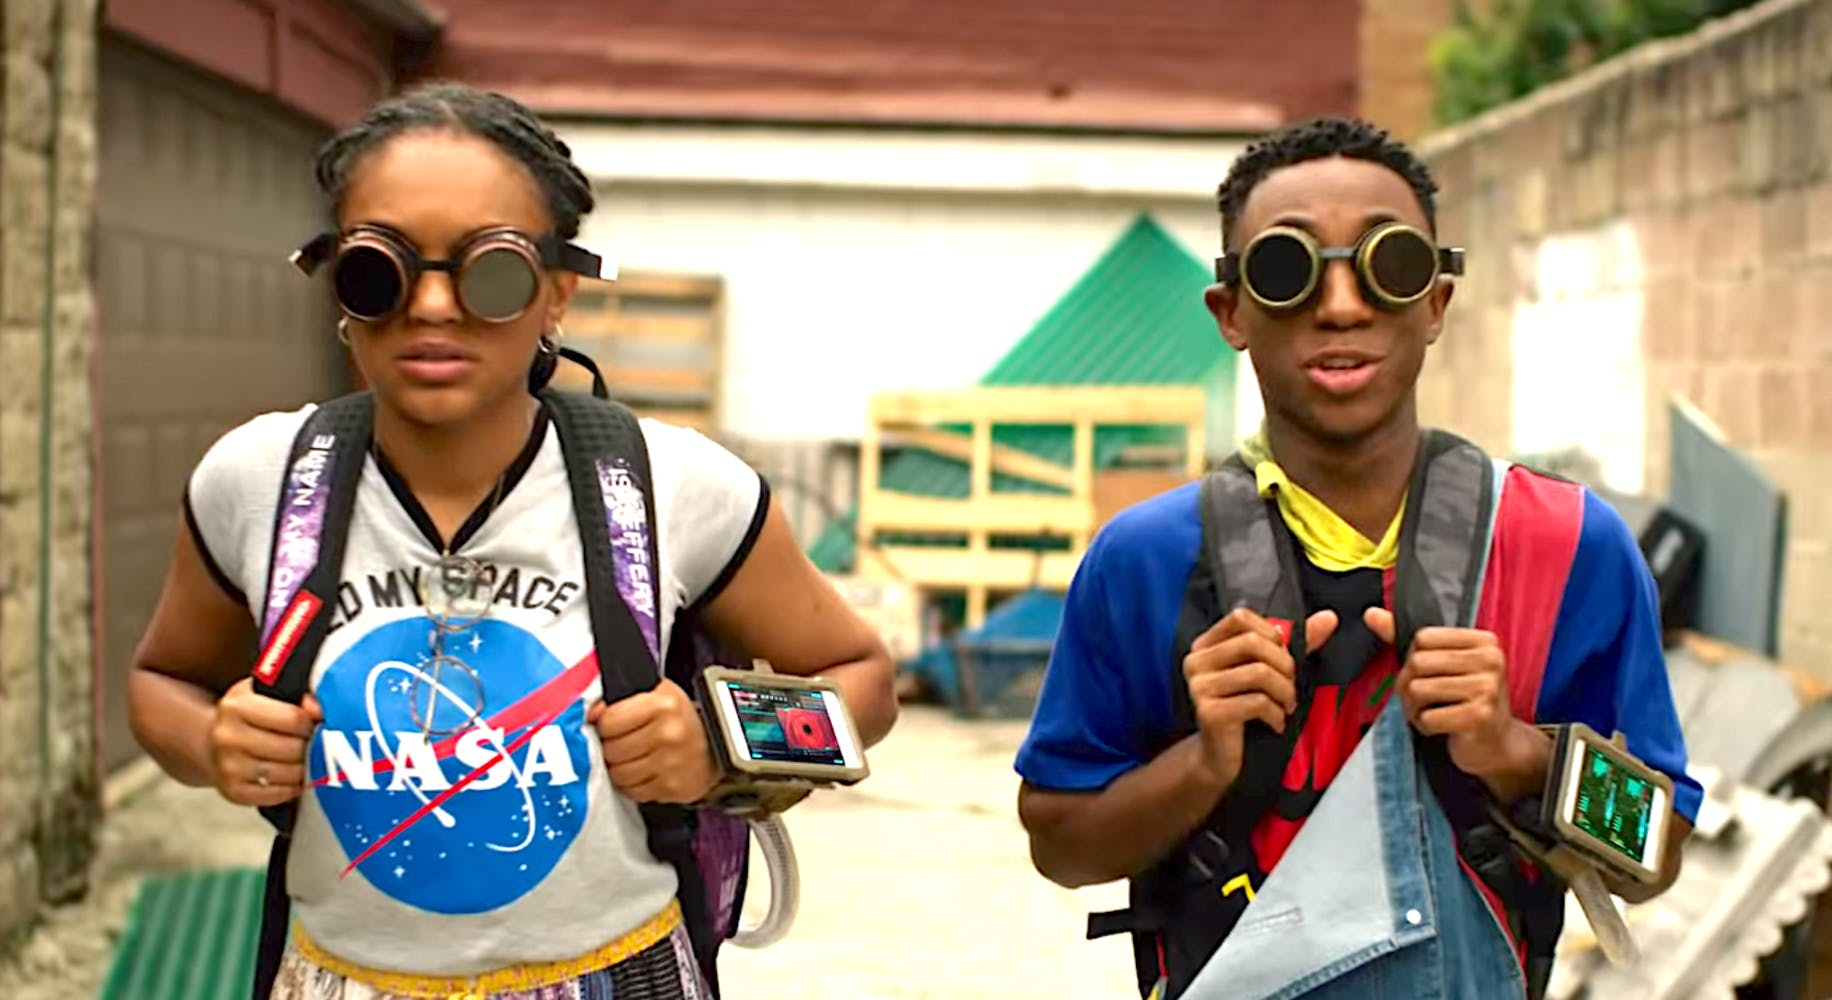 African american teen girl and boy, wearing backpacks, gogglels, and iPhones on their wrists.